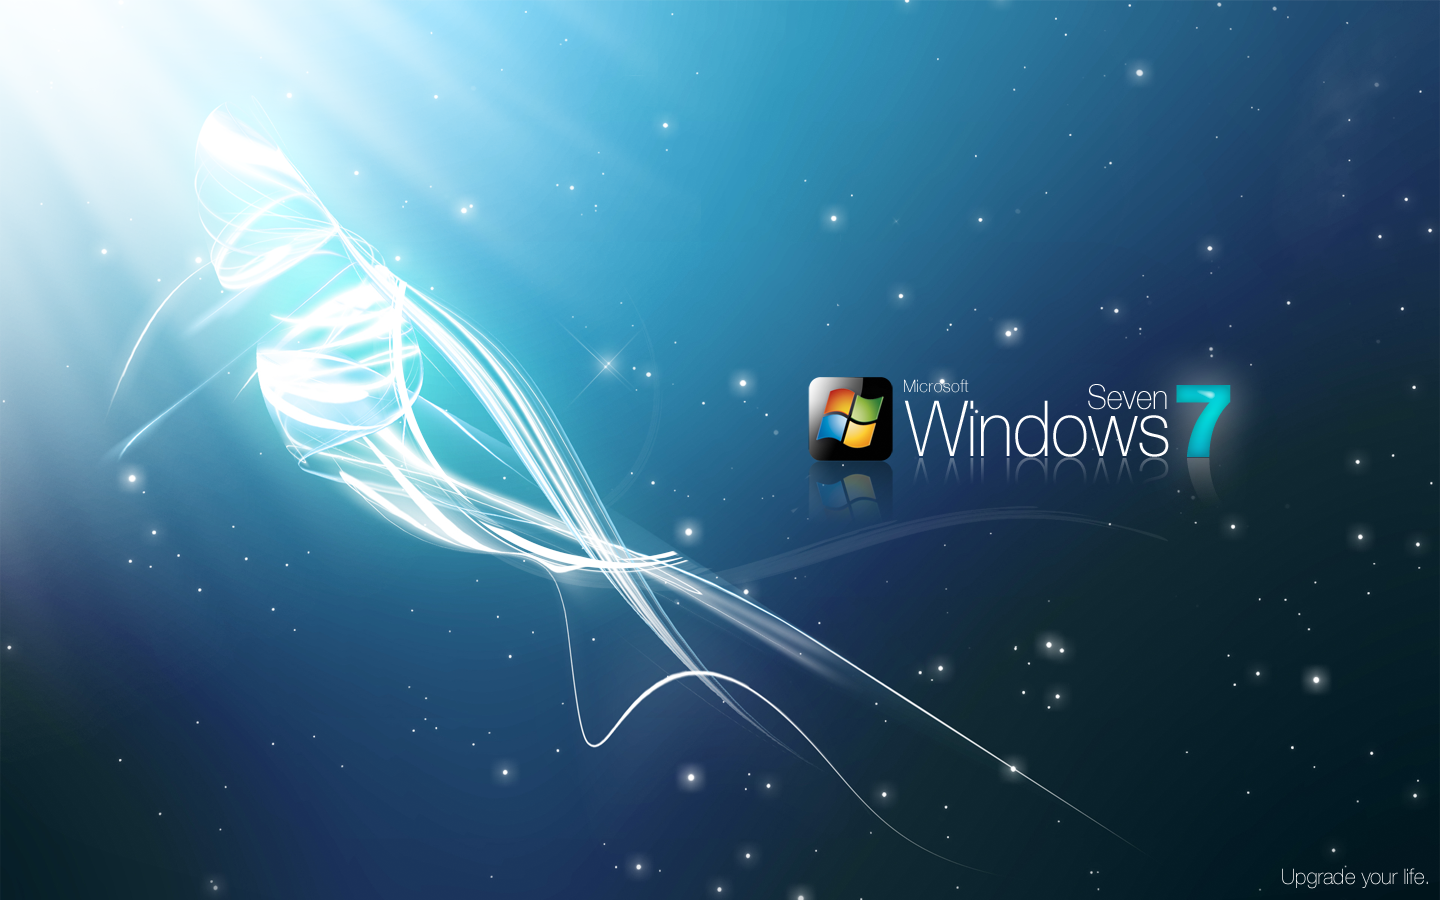 Windows RC Wallpaper Windows Wallpaper